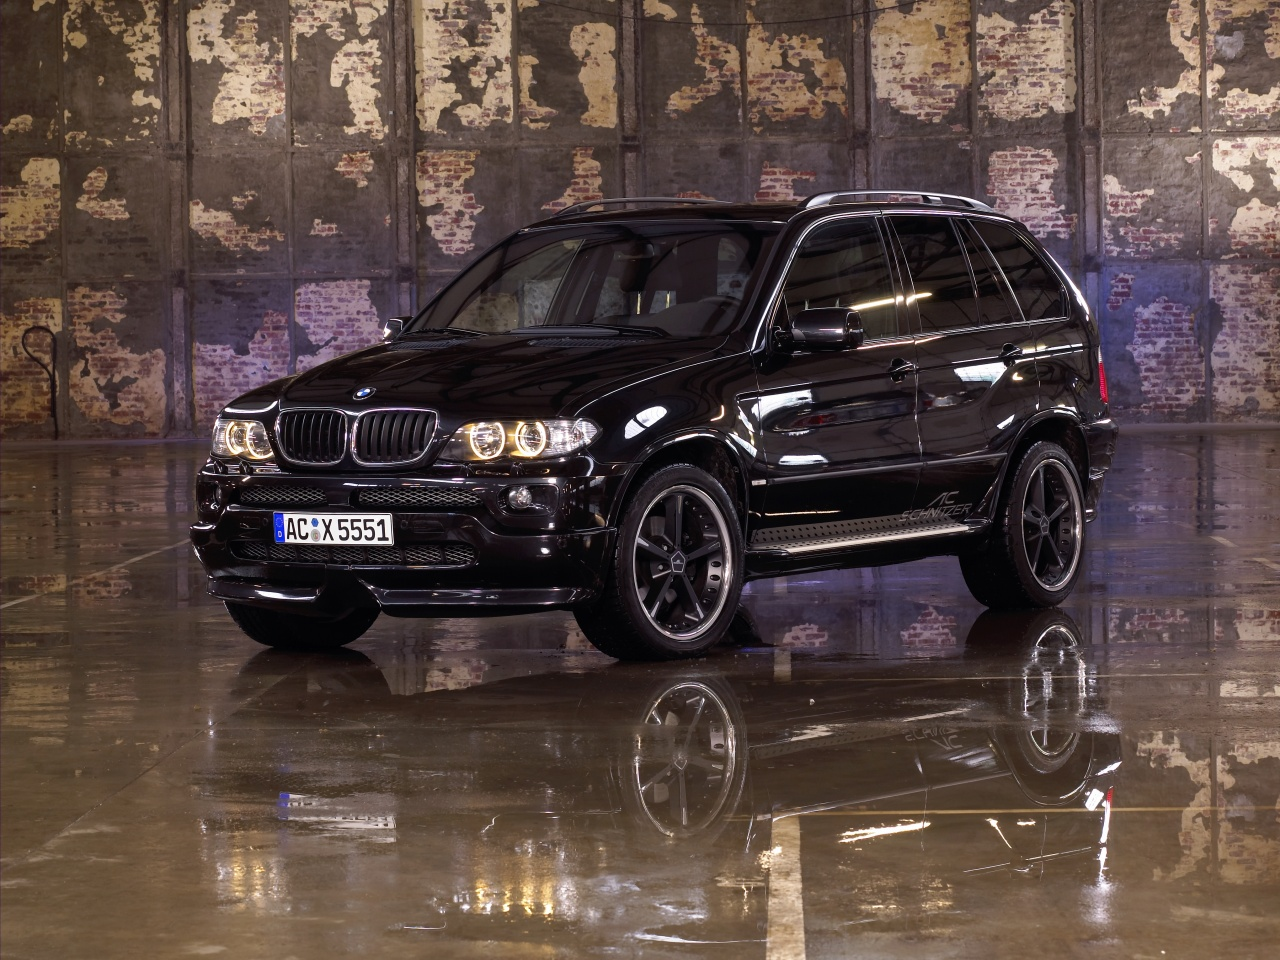 wallpaper 1280x960: BMW X5 by AC Schnitzer - left front view